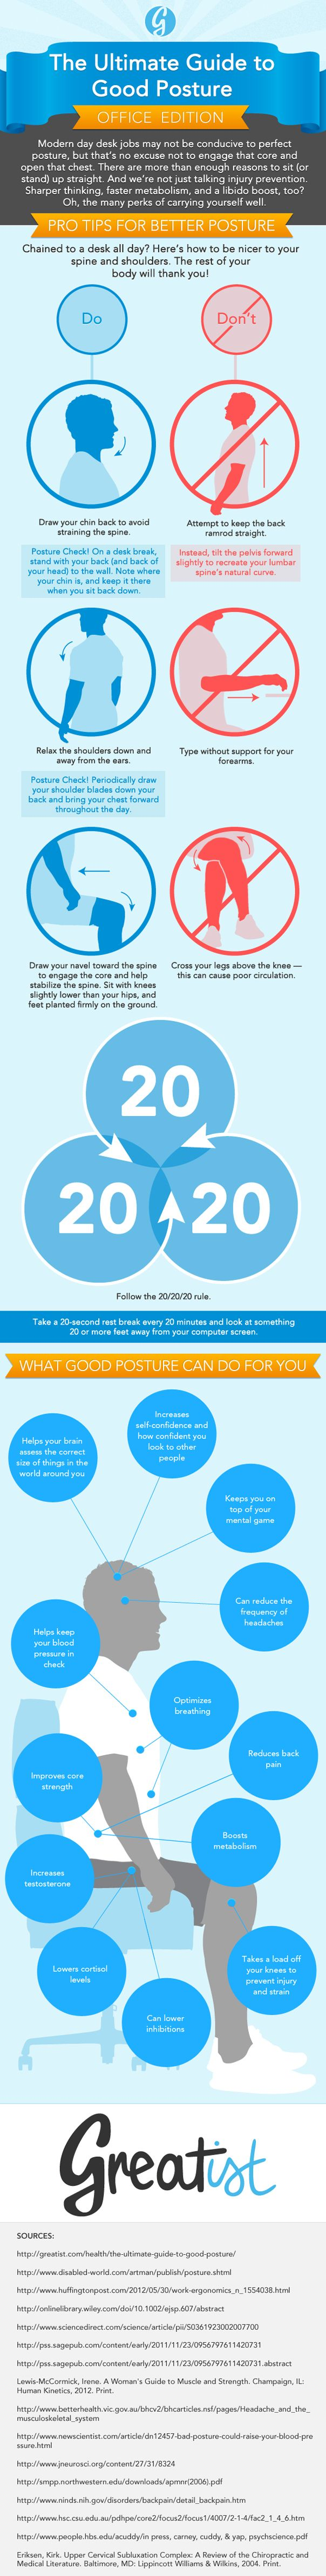 The Ultimate Guide to Good Posture: Office Edition | Healthland | TIME.com